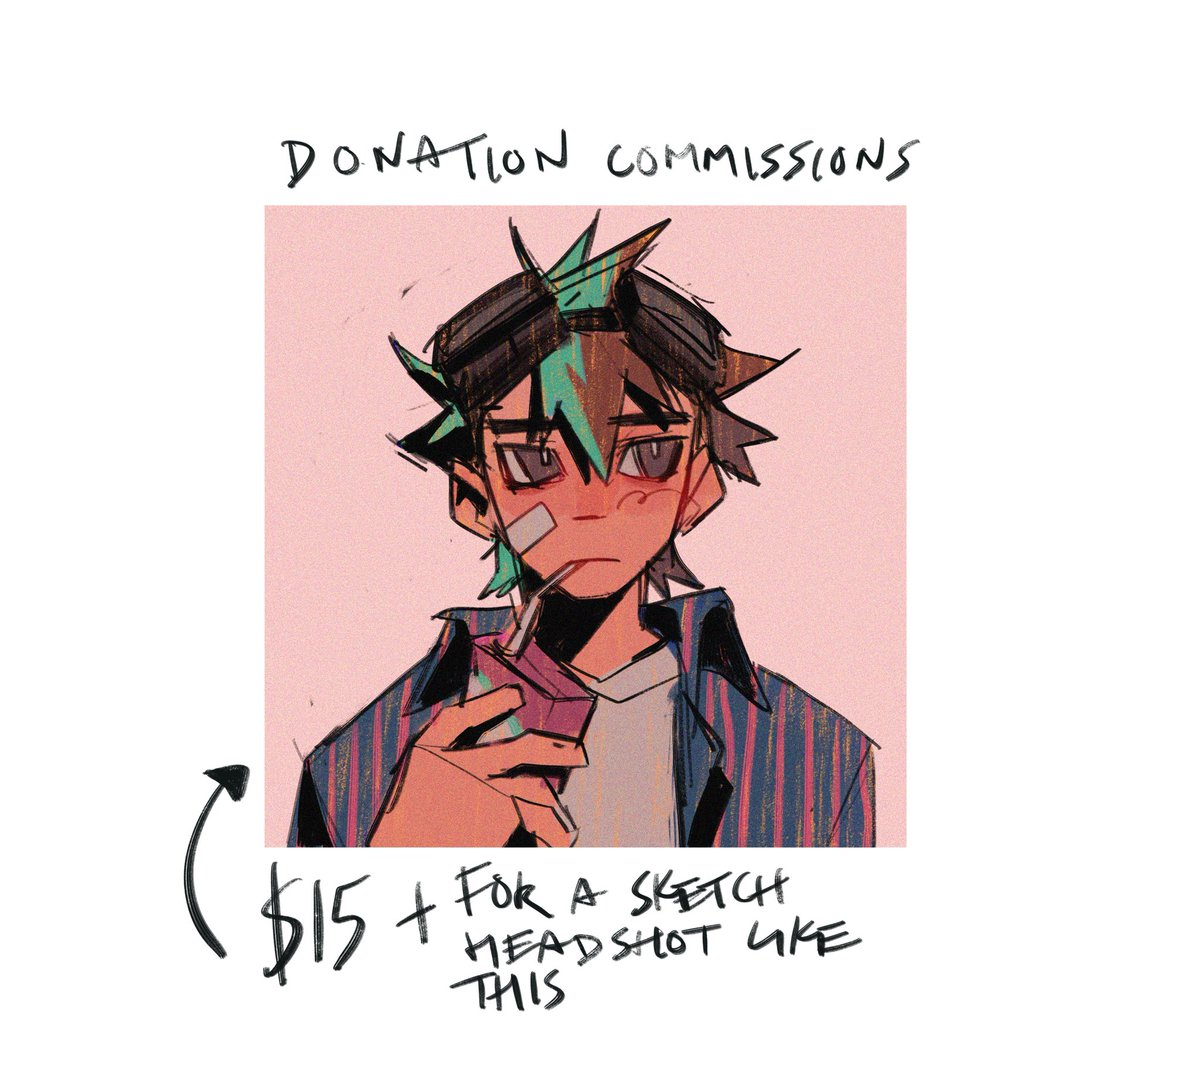 Opening donation commissions! Please dm if interested, anything helps!